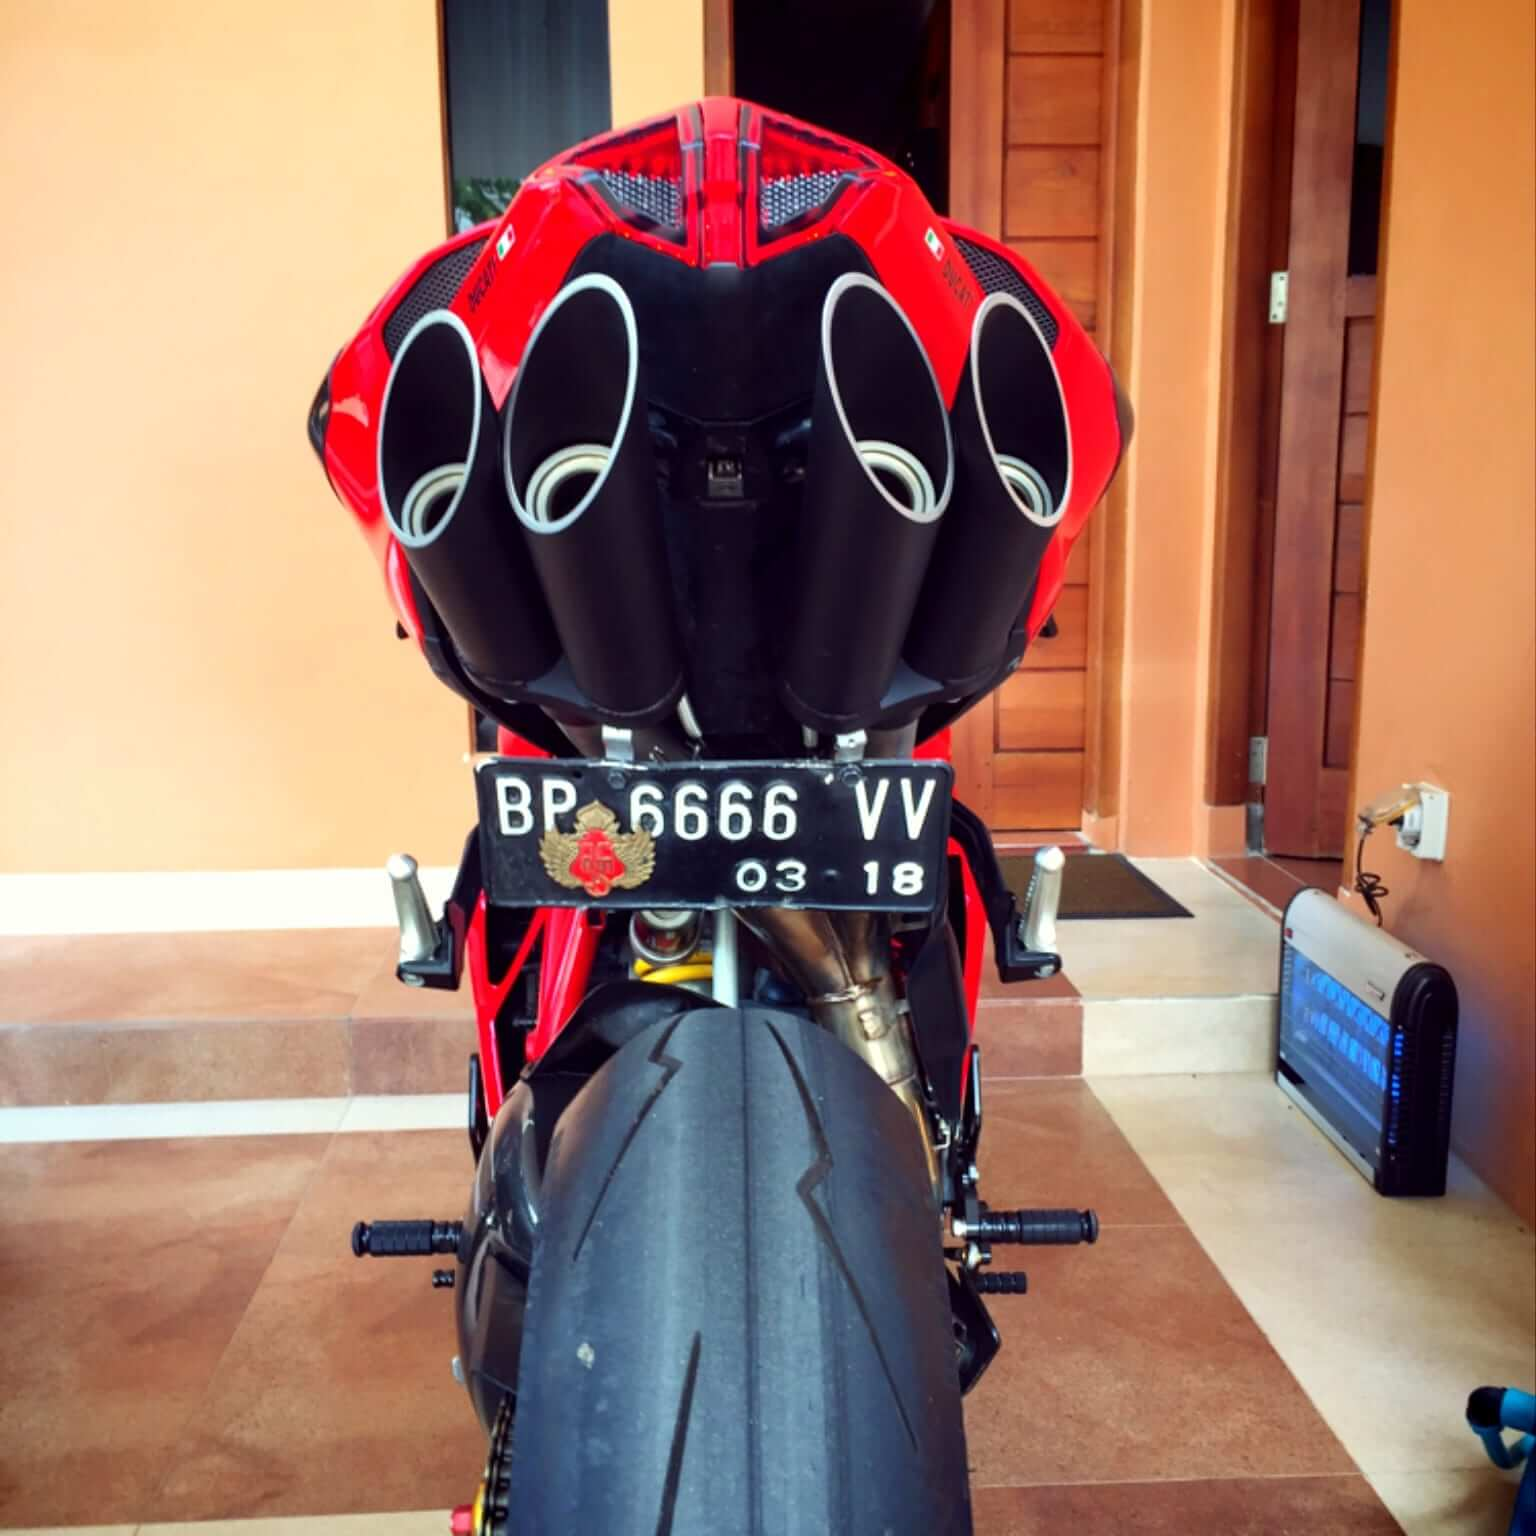 Toce performance exhausts ducati